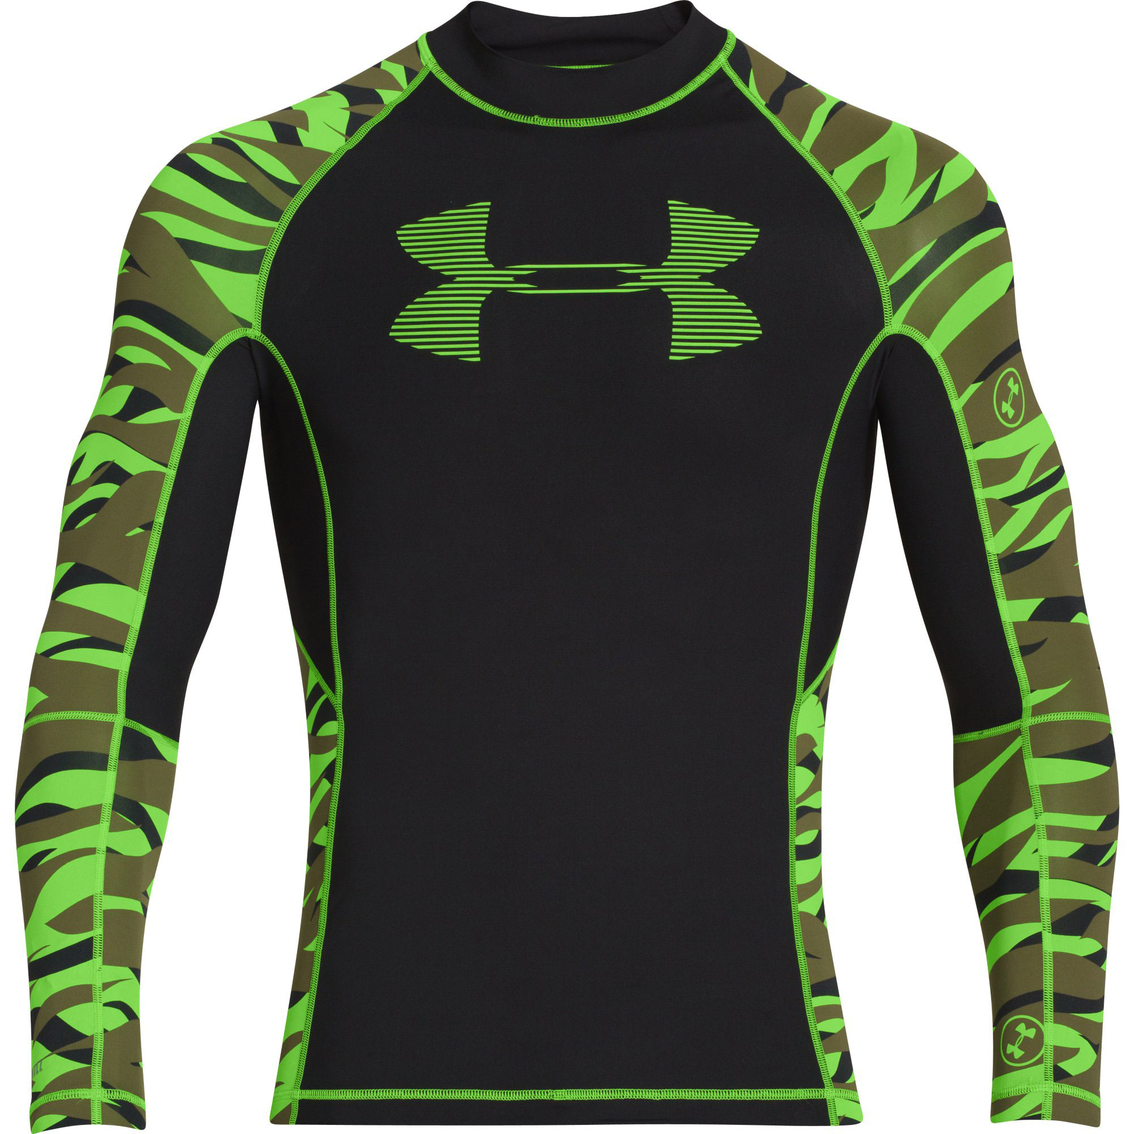 under armour ex helios rashguard shirt swimwear